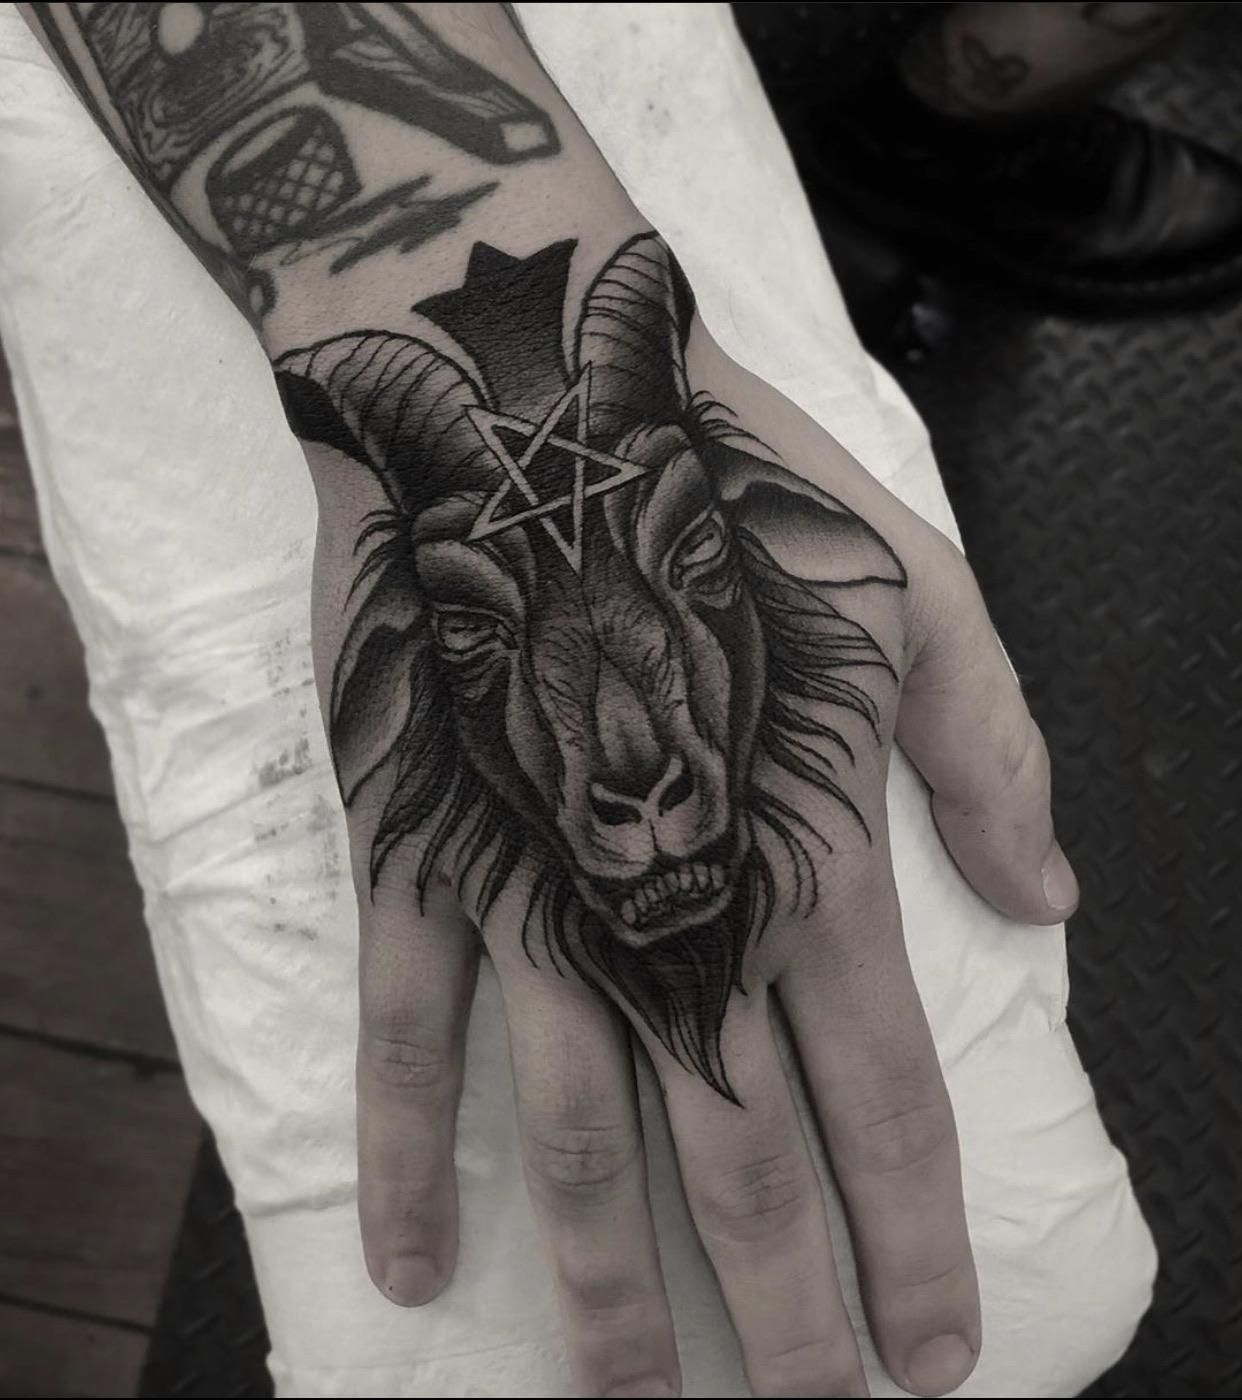 Baphomet hand tattoo done by Jayden seventh circle